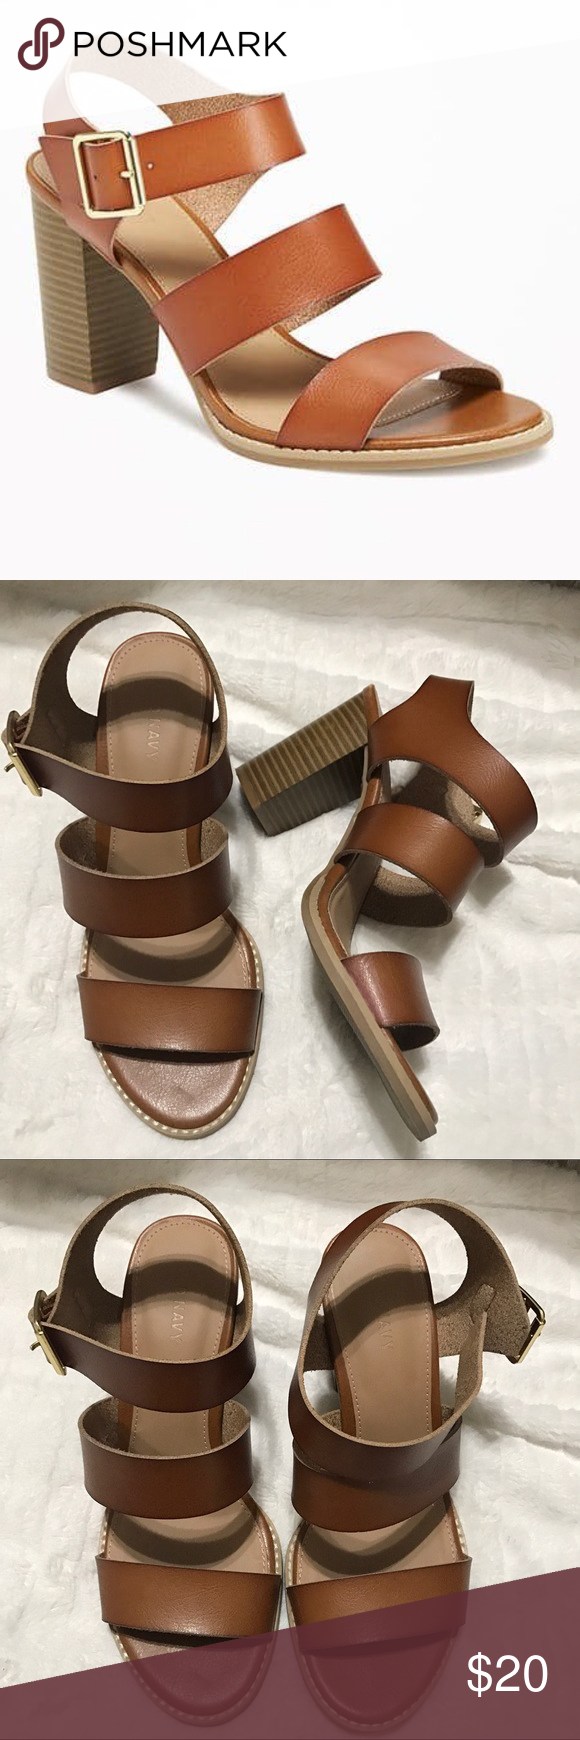 b2c306524d12d3  20 Old Navy Triple Strap Block Heel Sandals Worn once. Size too big for  me. Perfect condition! Old Navy Shoes Sandals